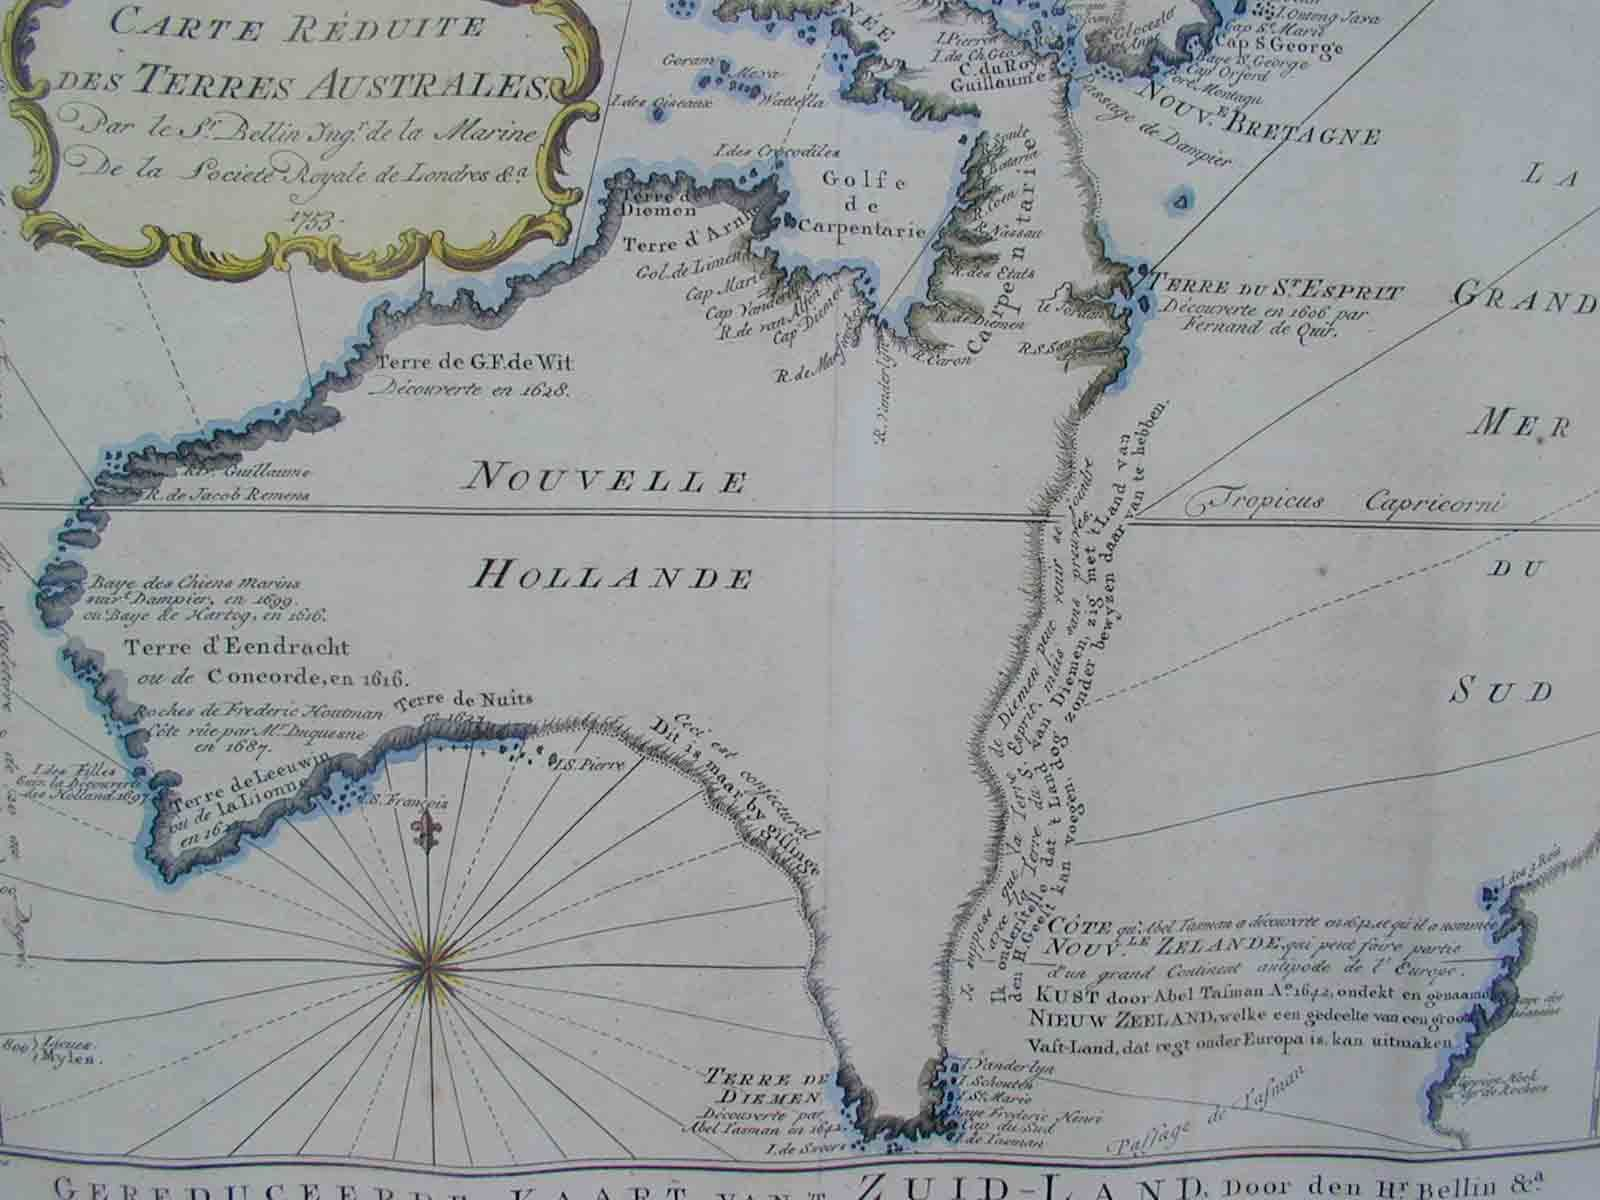 Map Of Australia 1770.Captain Cook S Map Of Australia On Which He Landed With His Crew